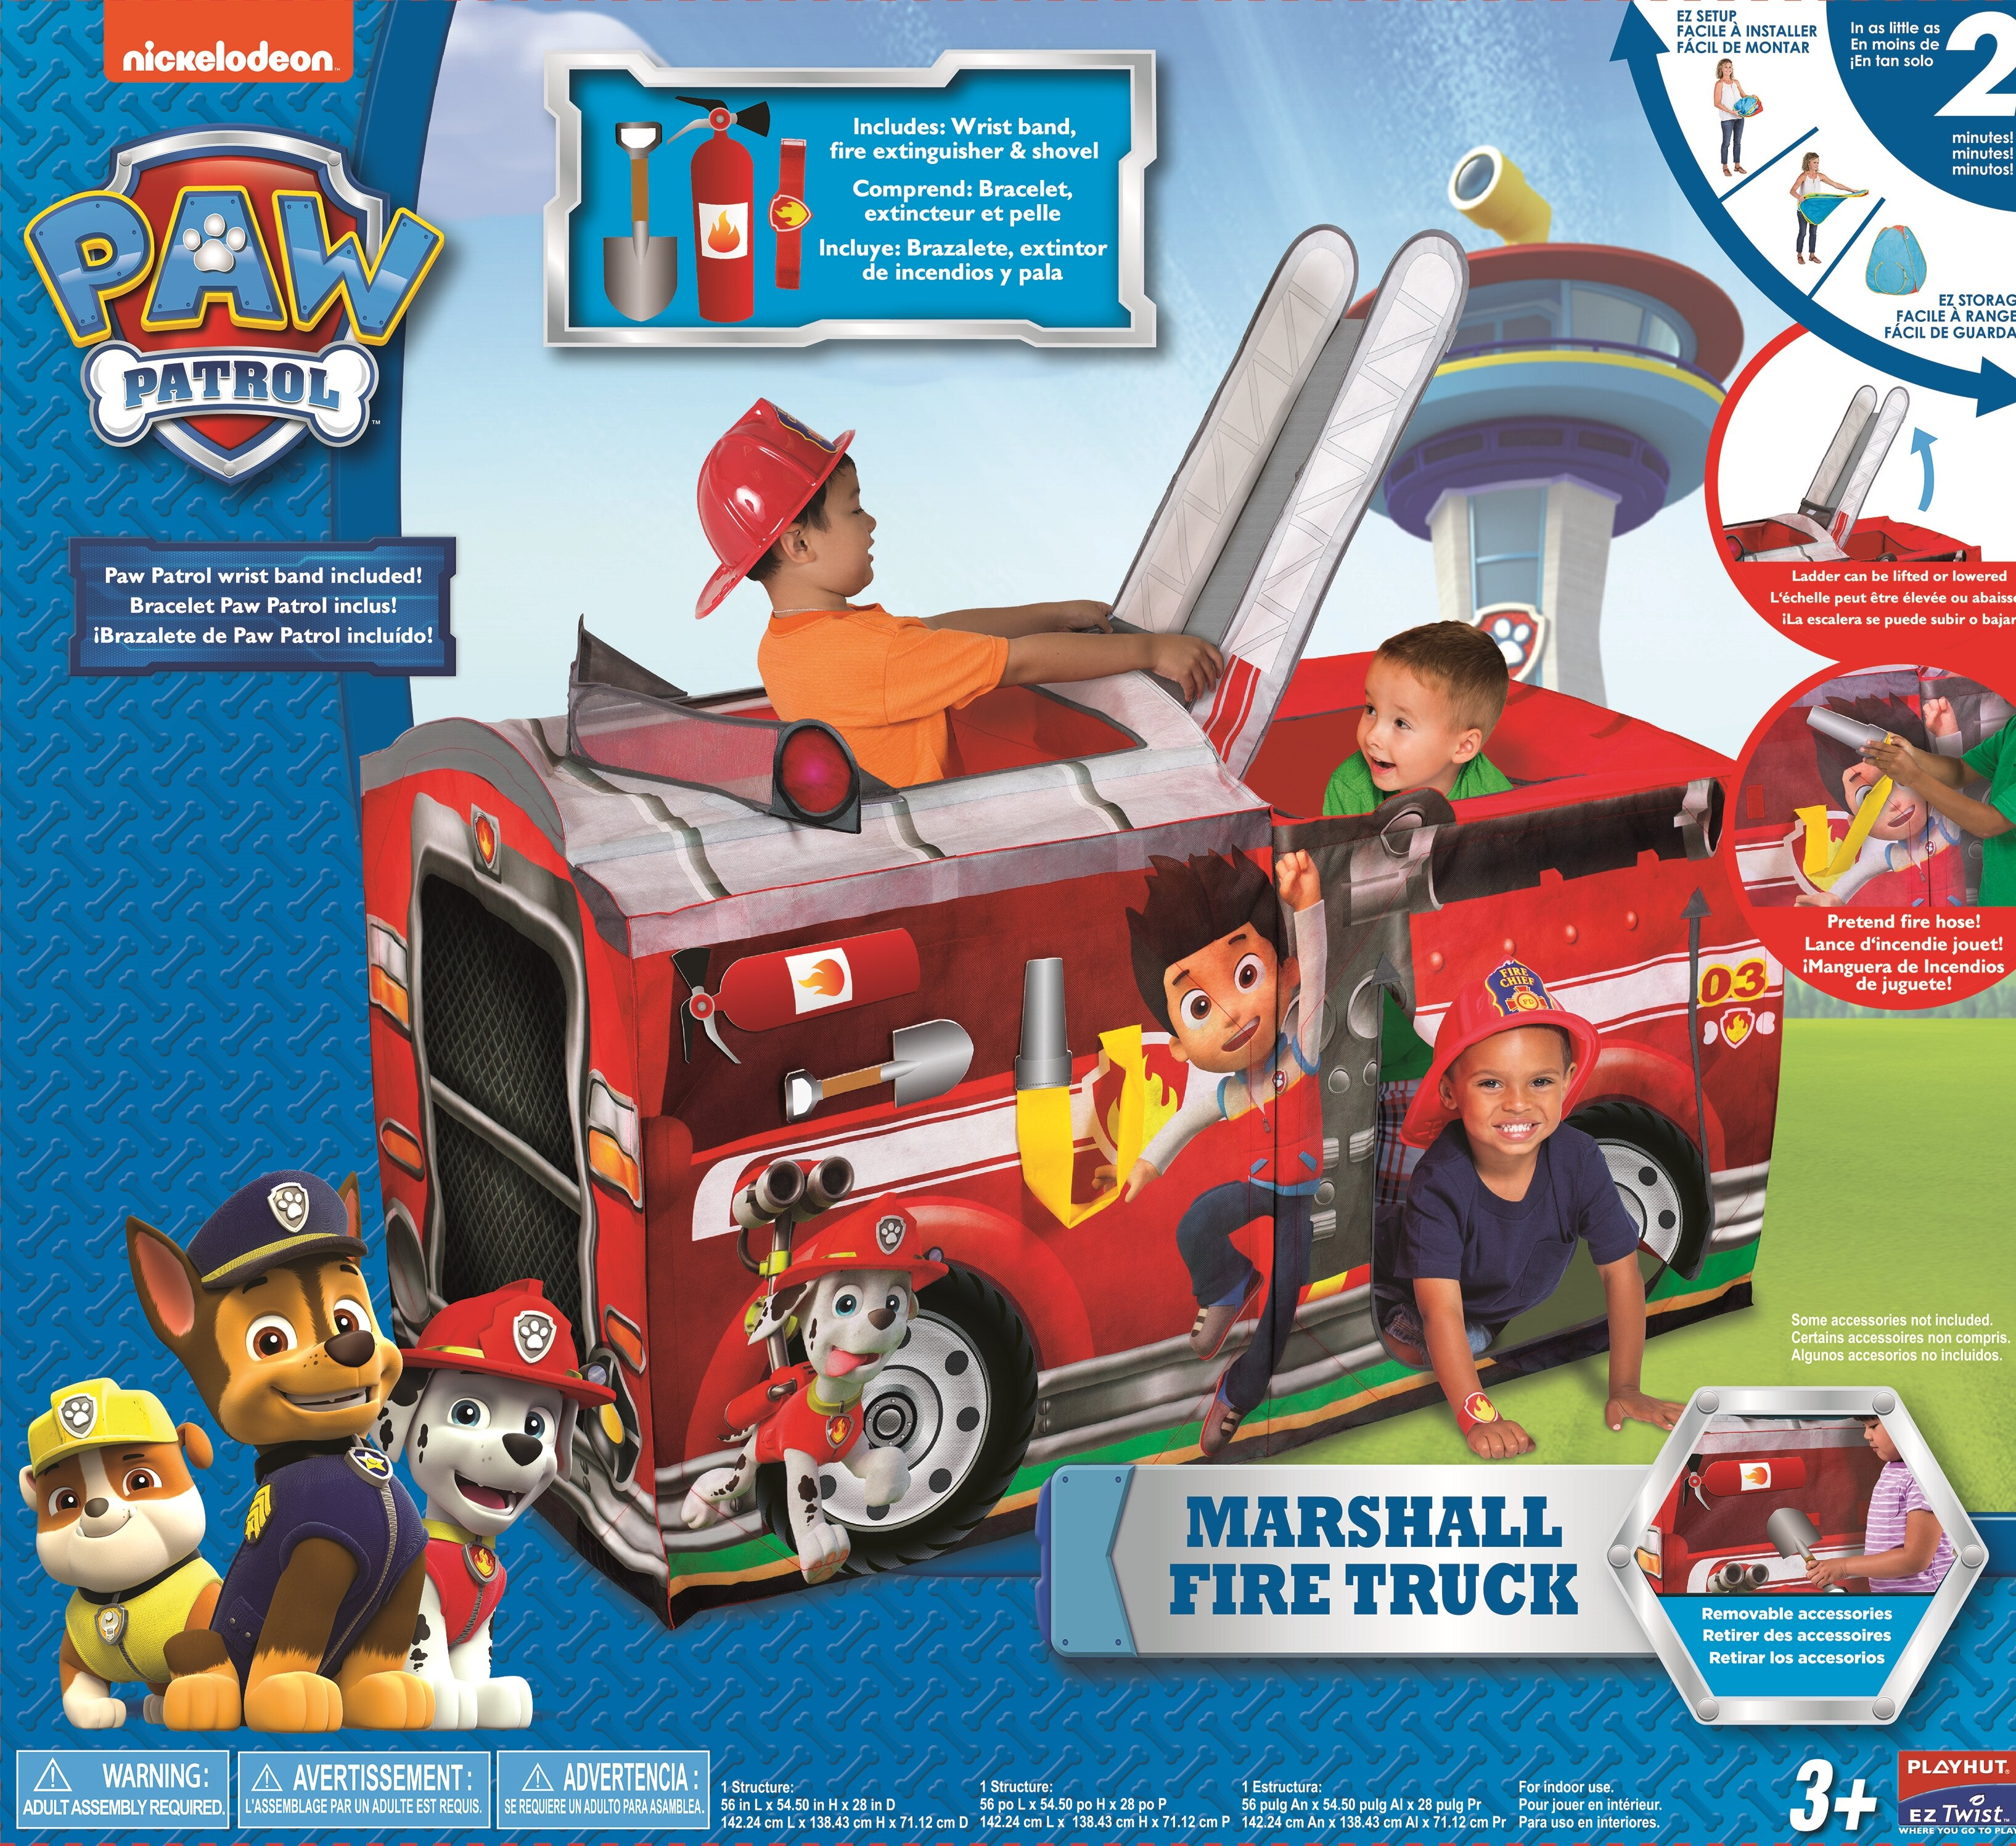 playhut paw patrol marshall fire truck pop up play tent reviews